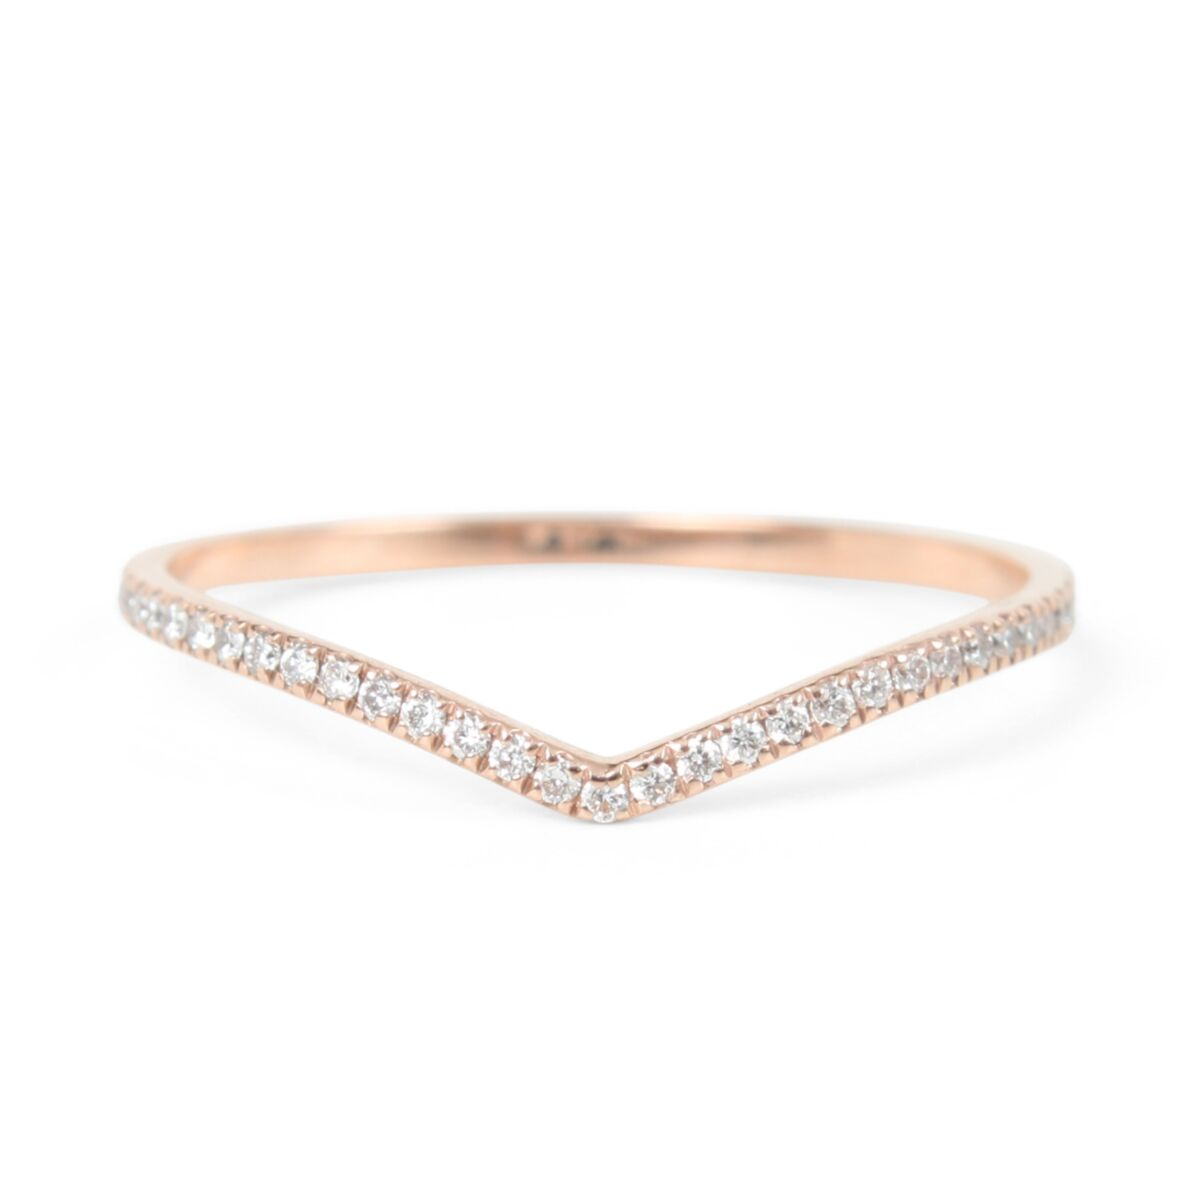 Fairy Light Eternity Band, curved image